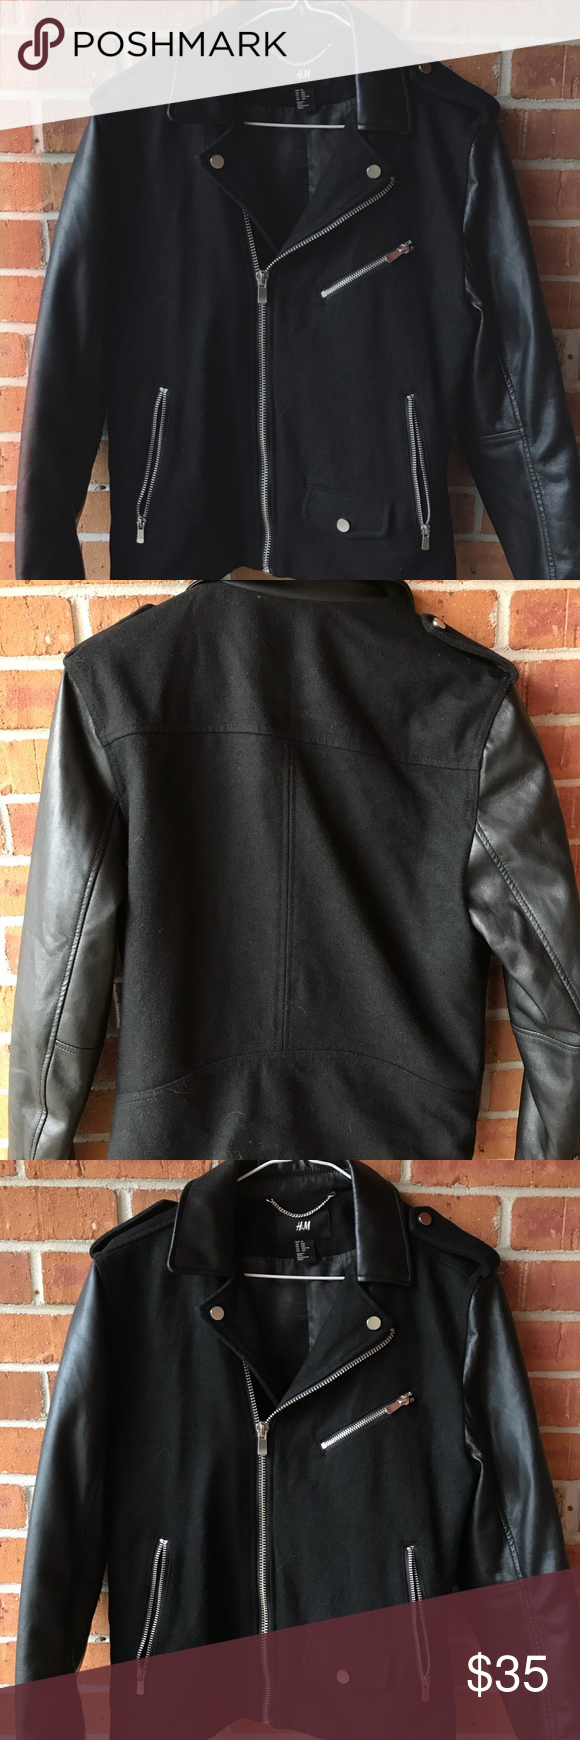 H&M Biker/Motorcycle Jacket The jacket is a men's 36R, and